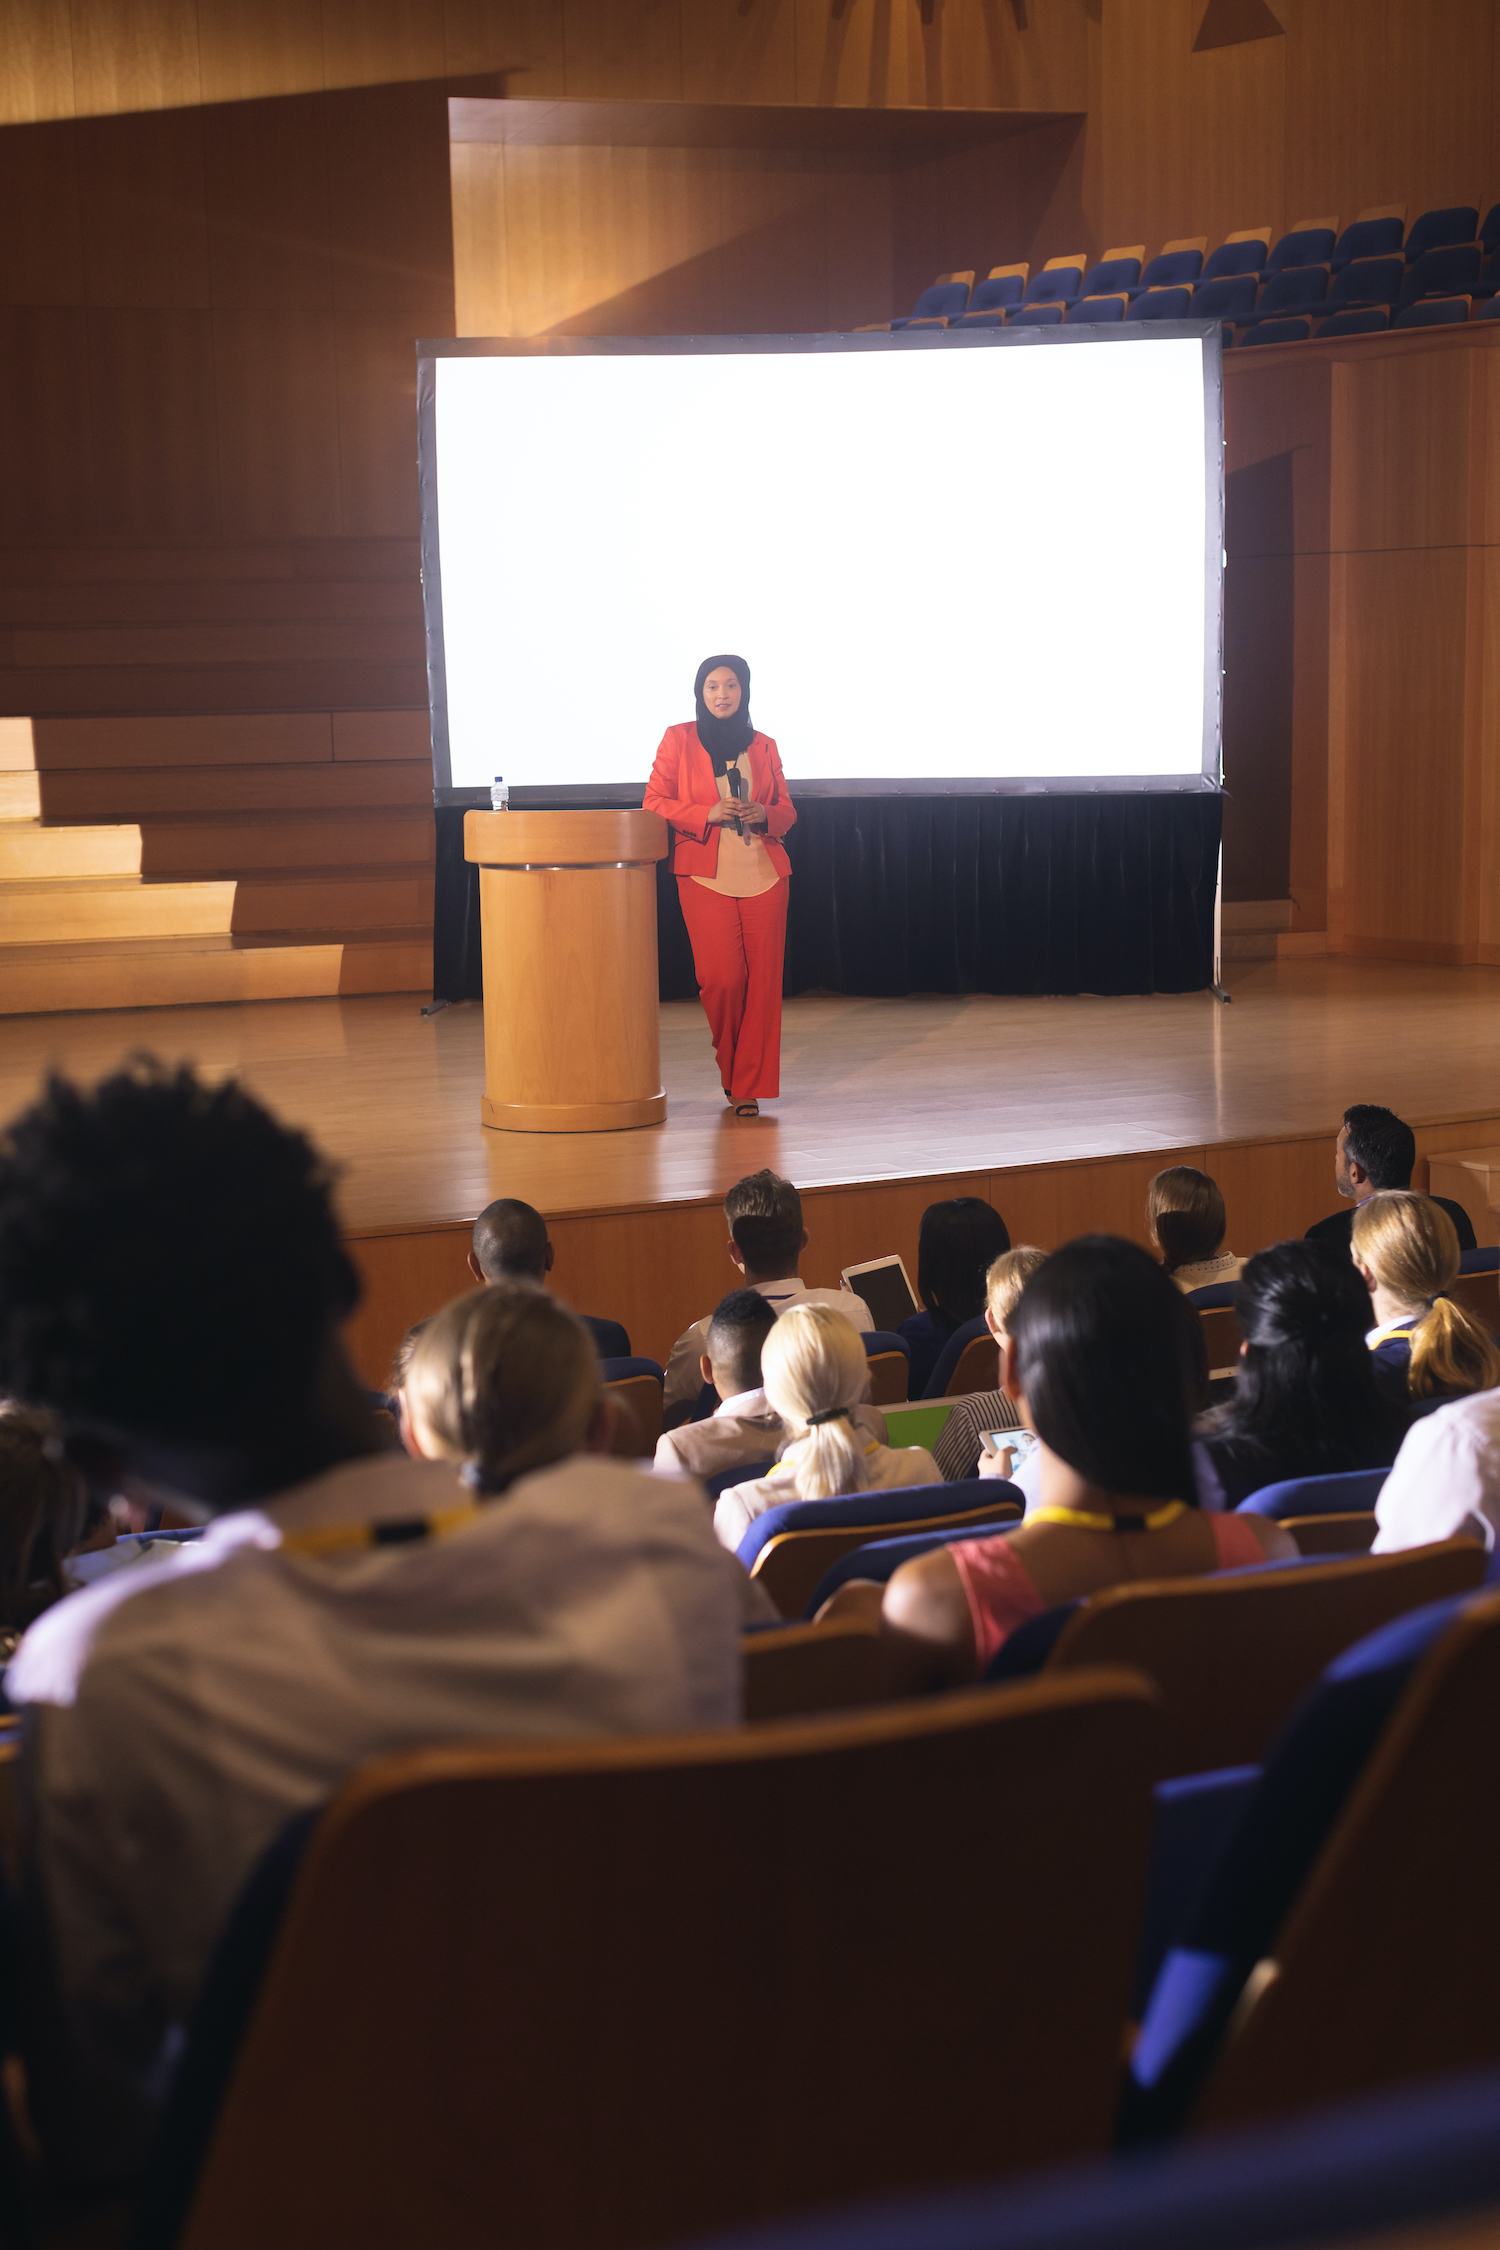 Picture - person presenting in front of an audience